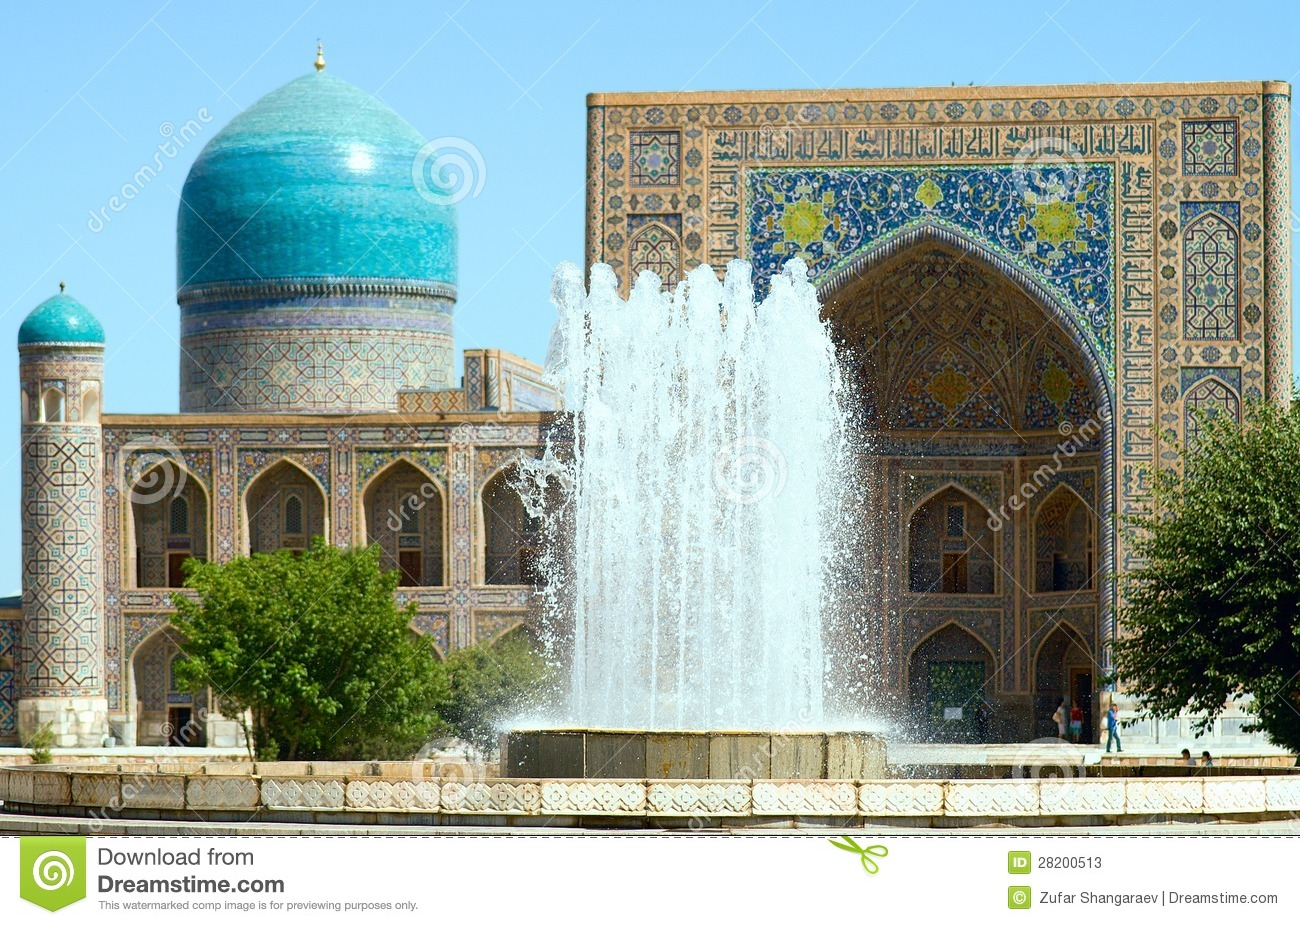 https://thumbs.dreamstime.com/z/ancient-muslim-architecture-complex-uzbekistan-28200513.jpg